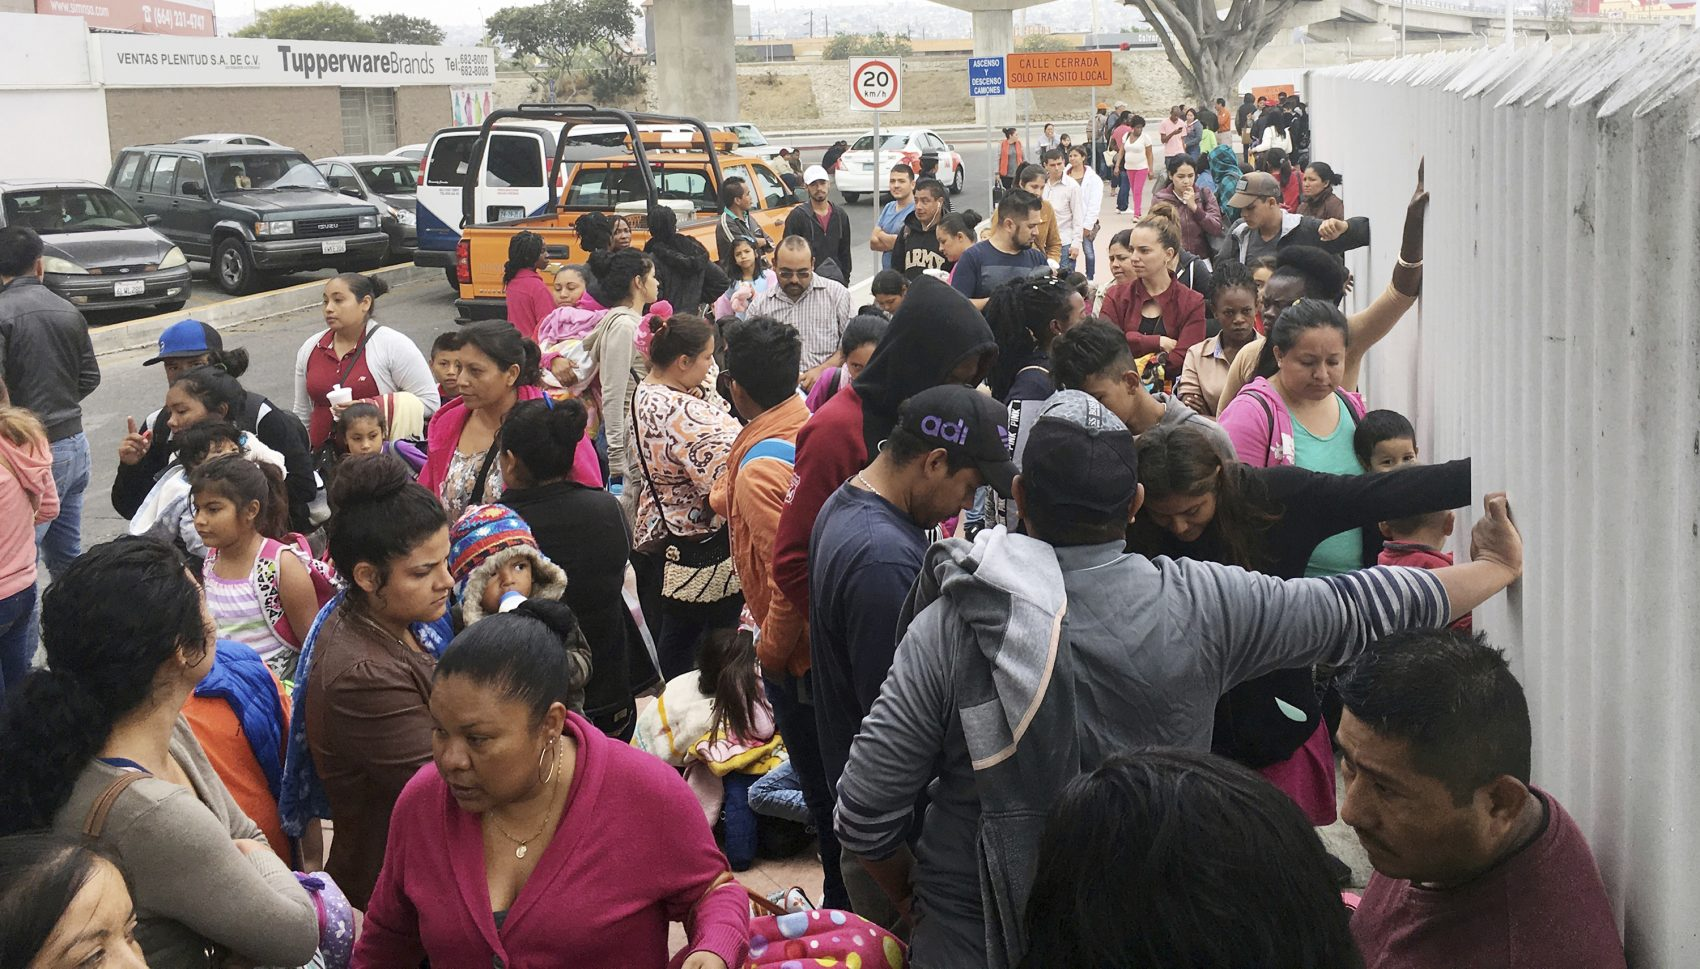 In this Monday, June 4, 2018 file photo, people seeking political asylum in the United States line up to be interviewed in Tijuana, Mexico, just across the U.S. border south of San Diego. Immigration judges generally cannot consider domestic and gang violence as grounds for asylum, U.S. Attorney General Jeff Sessions said Monday, June 11, 2018 in a ruling that could affect large numbers of Central Americans who have increasingly turned to the United States for protection. (Elliot Spagat/AP)